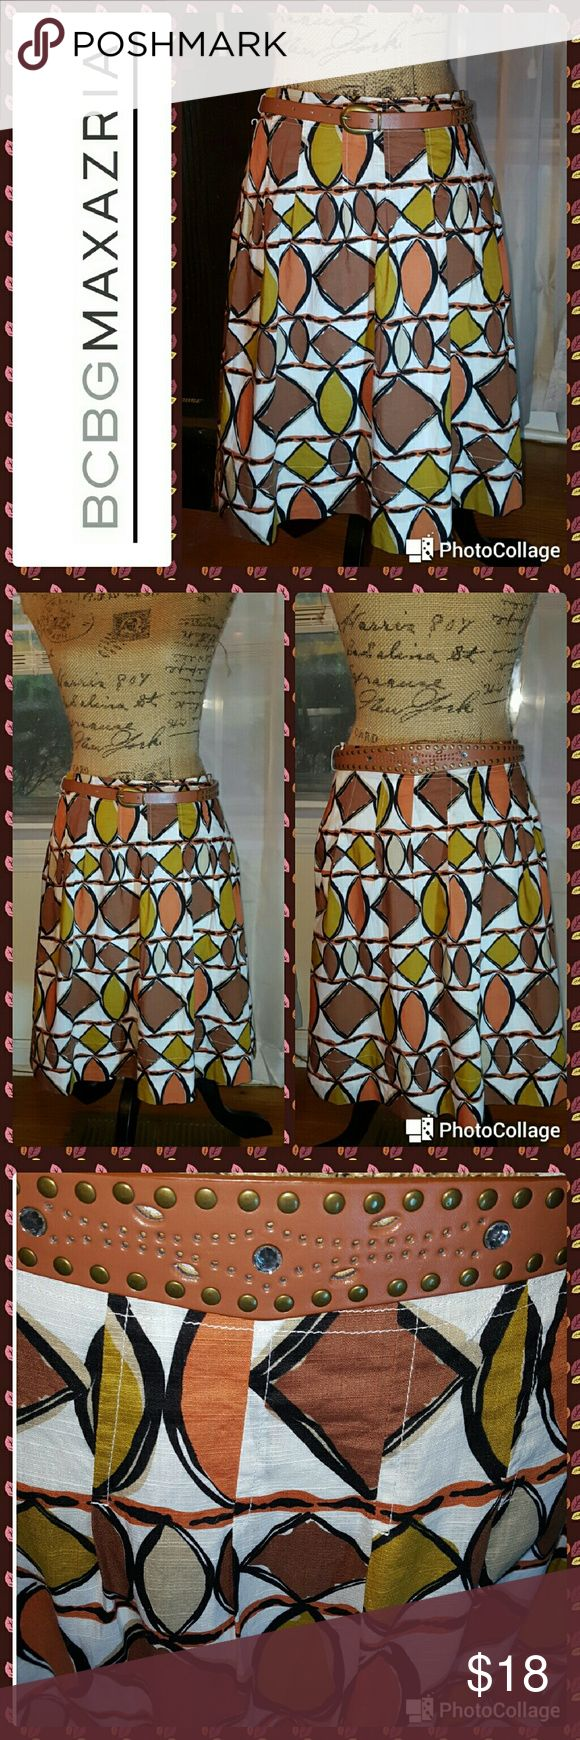 """Bcbgmaxazria brown abstract print full skirt In great condition.  BCBGMAXAZRIA skirt. Cream based with orange, brown and gold abstract pattern.  Full style.  Side zipper.  Completely lined.  I've added a leather belt with small rhinestones.  Measurements are length 20.5"""", waist 30"""". l BCBGMaxAzria Skirts A-Line or Full"""